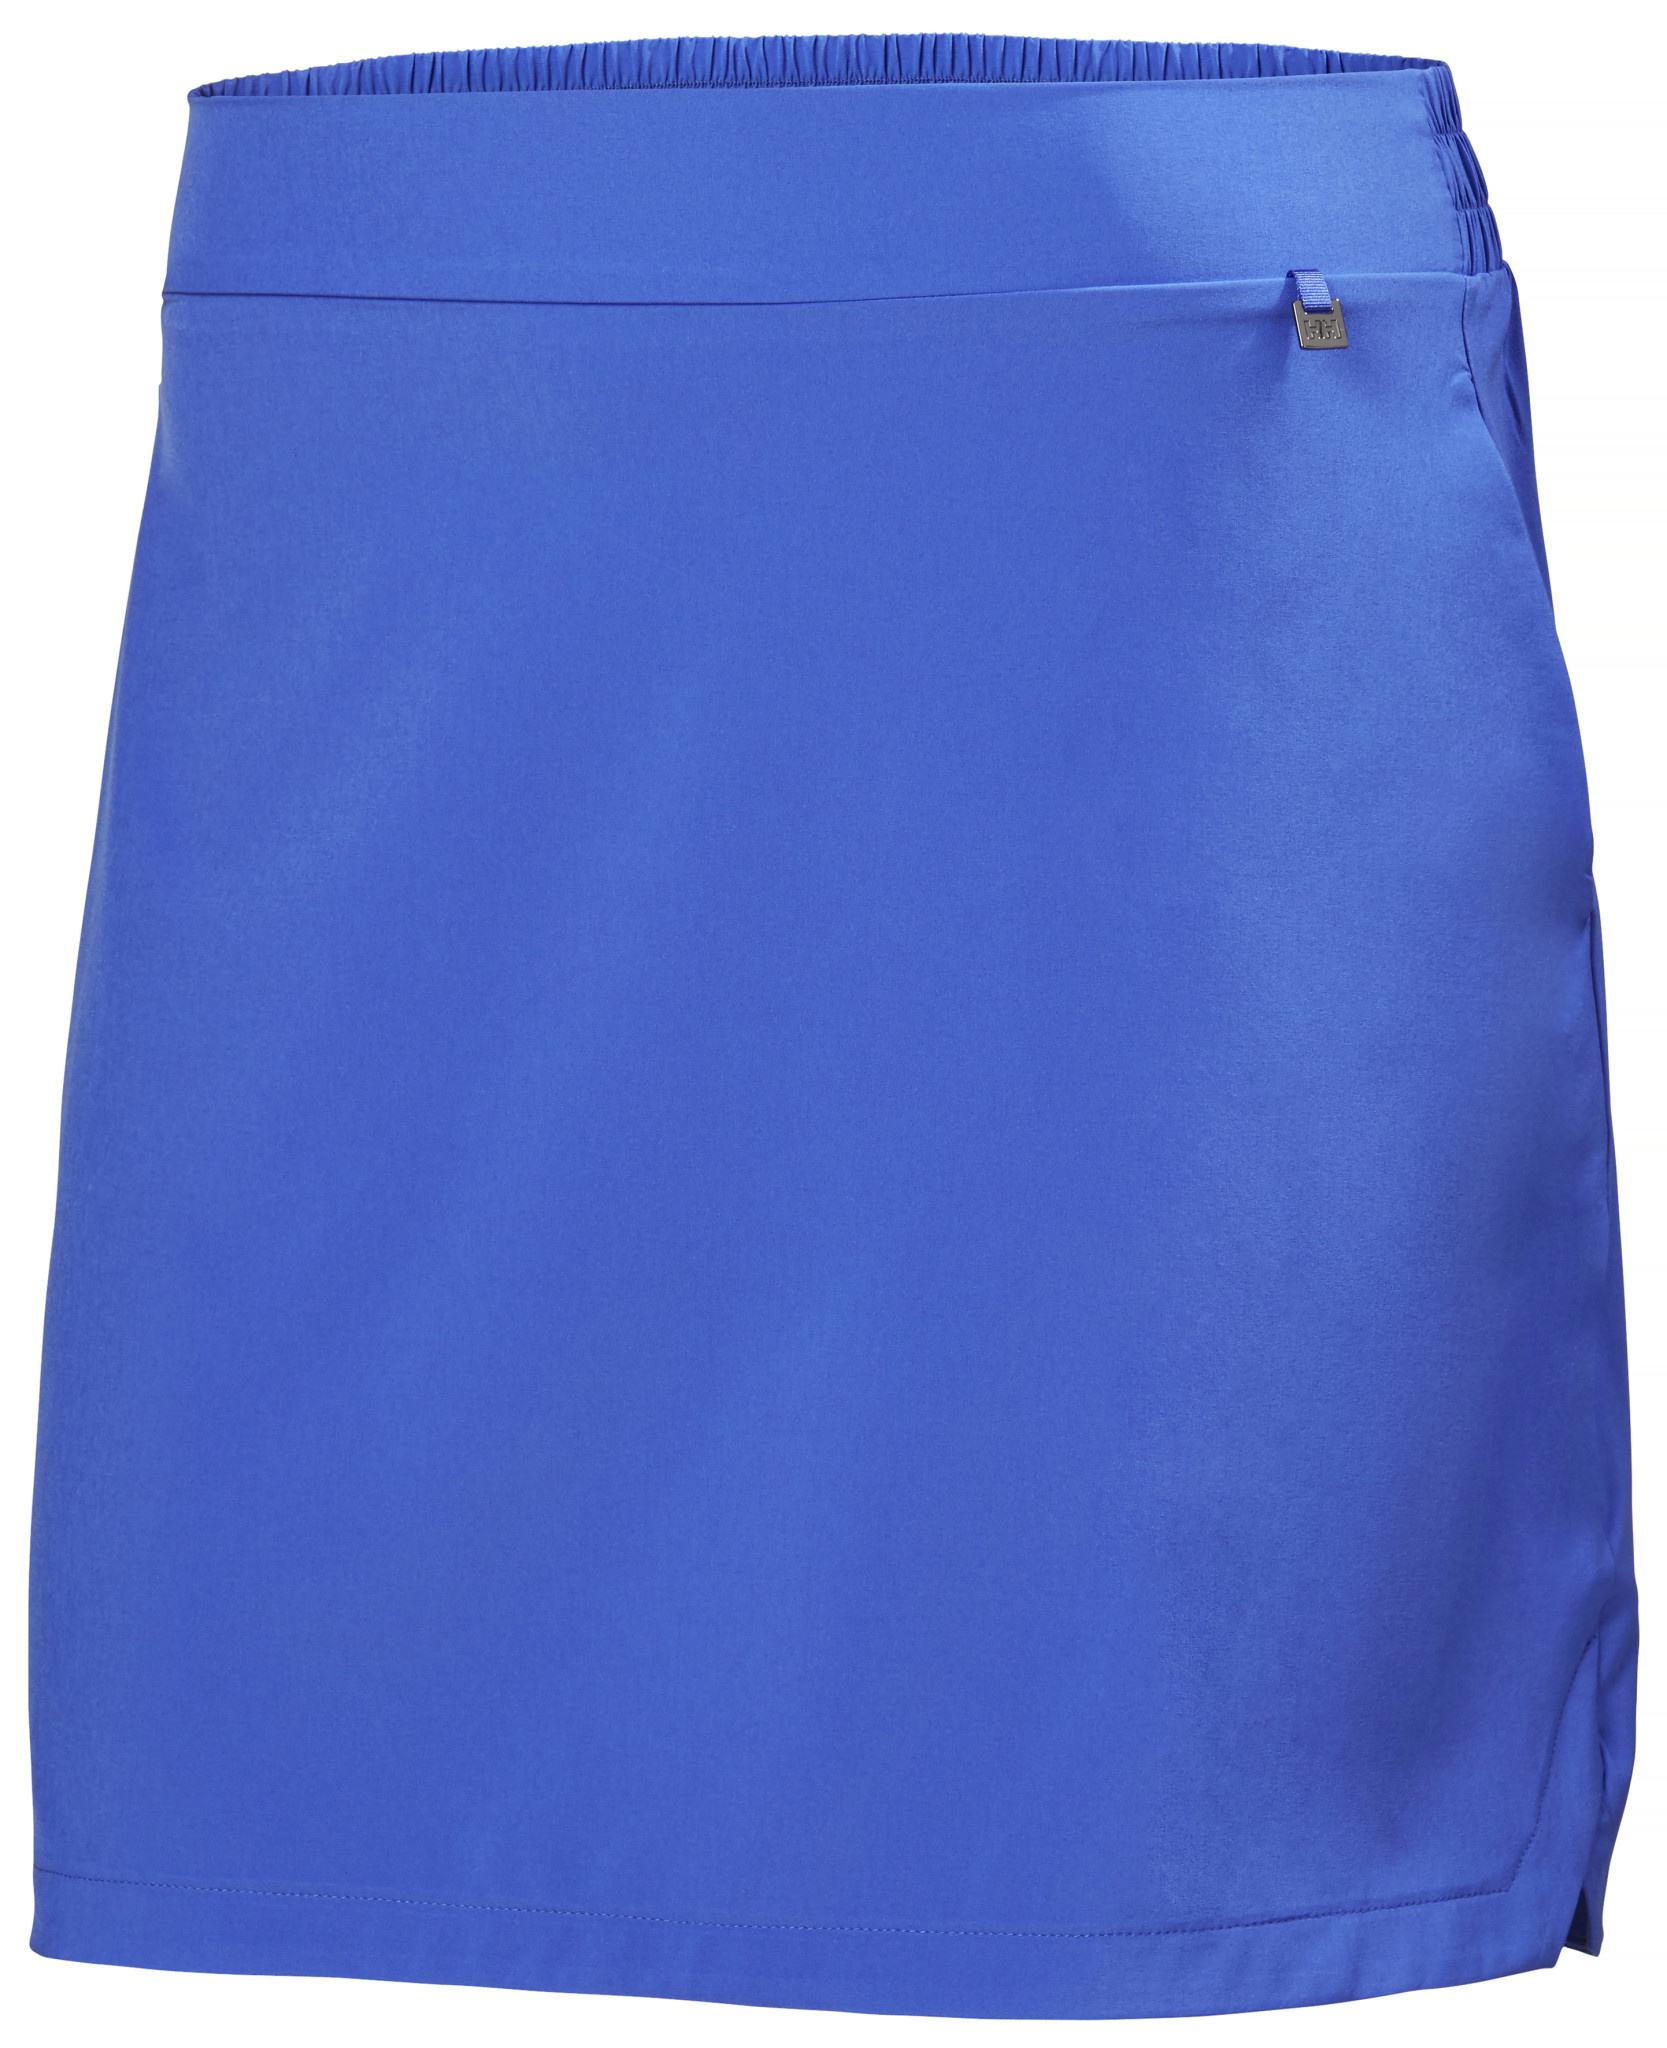 Thalia Skirt - Royal Blue